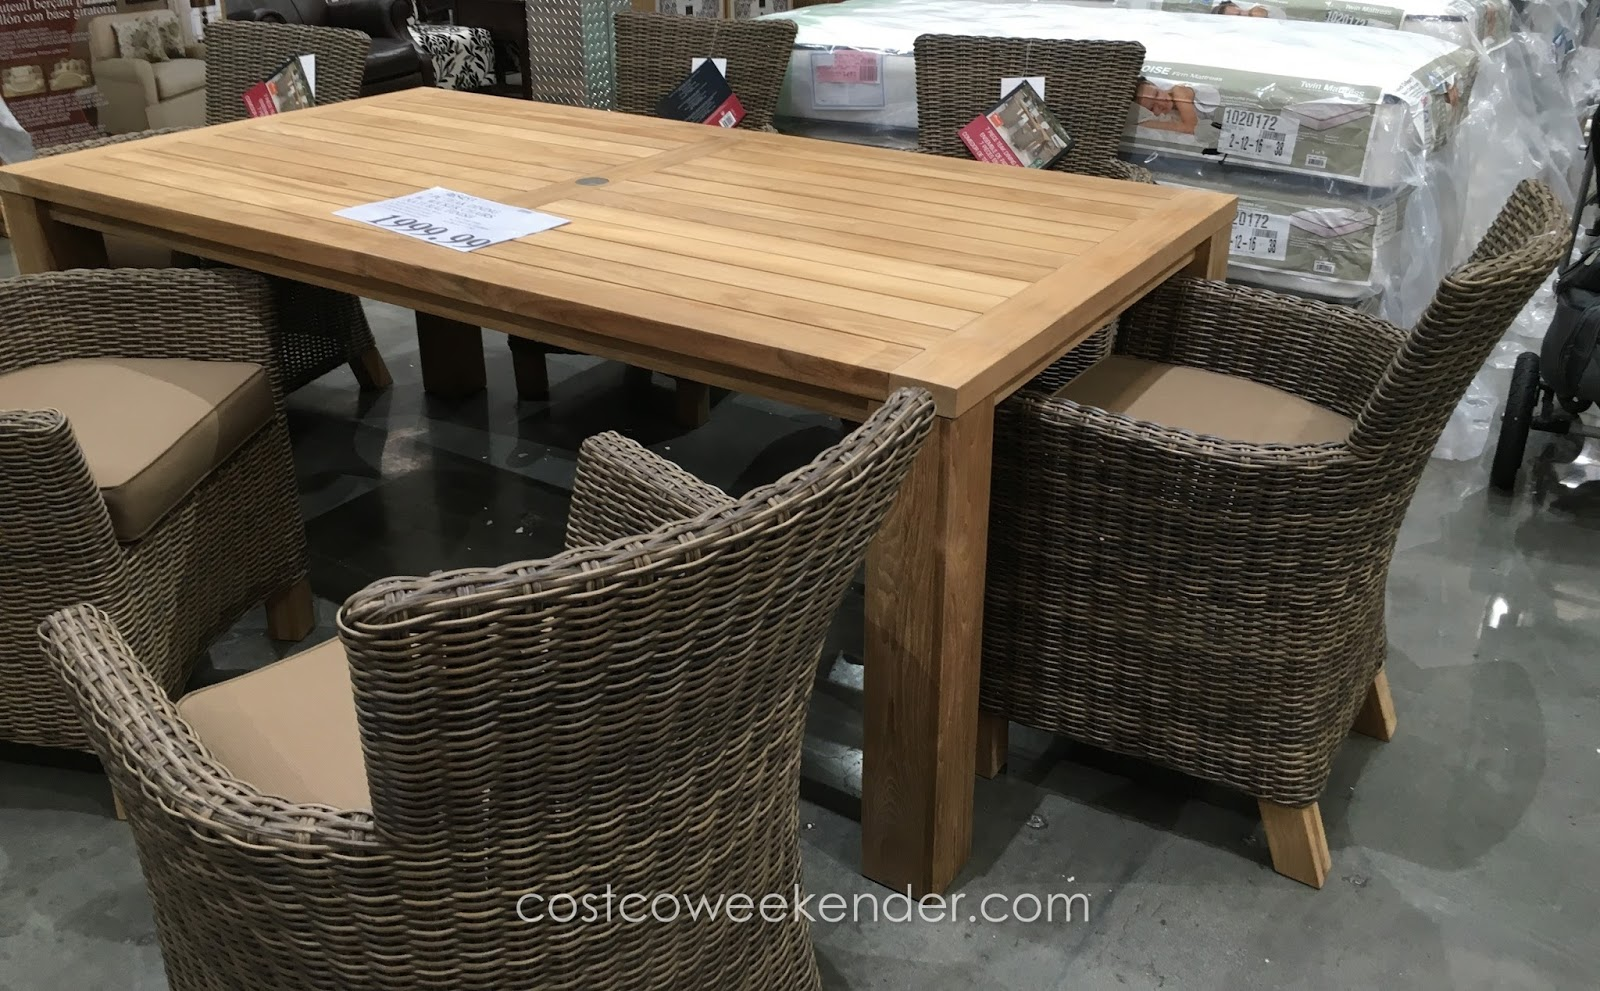 Sunbrella 7 Piece Teak Dining Set Costco Weekender : sunbrella 7 piece teak dining set costco from www.costcoweekender.com size 1600 x 991 jpeg 357kB